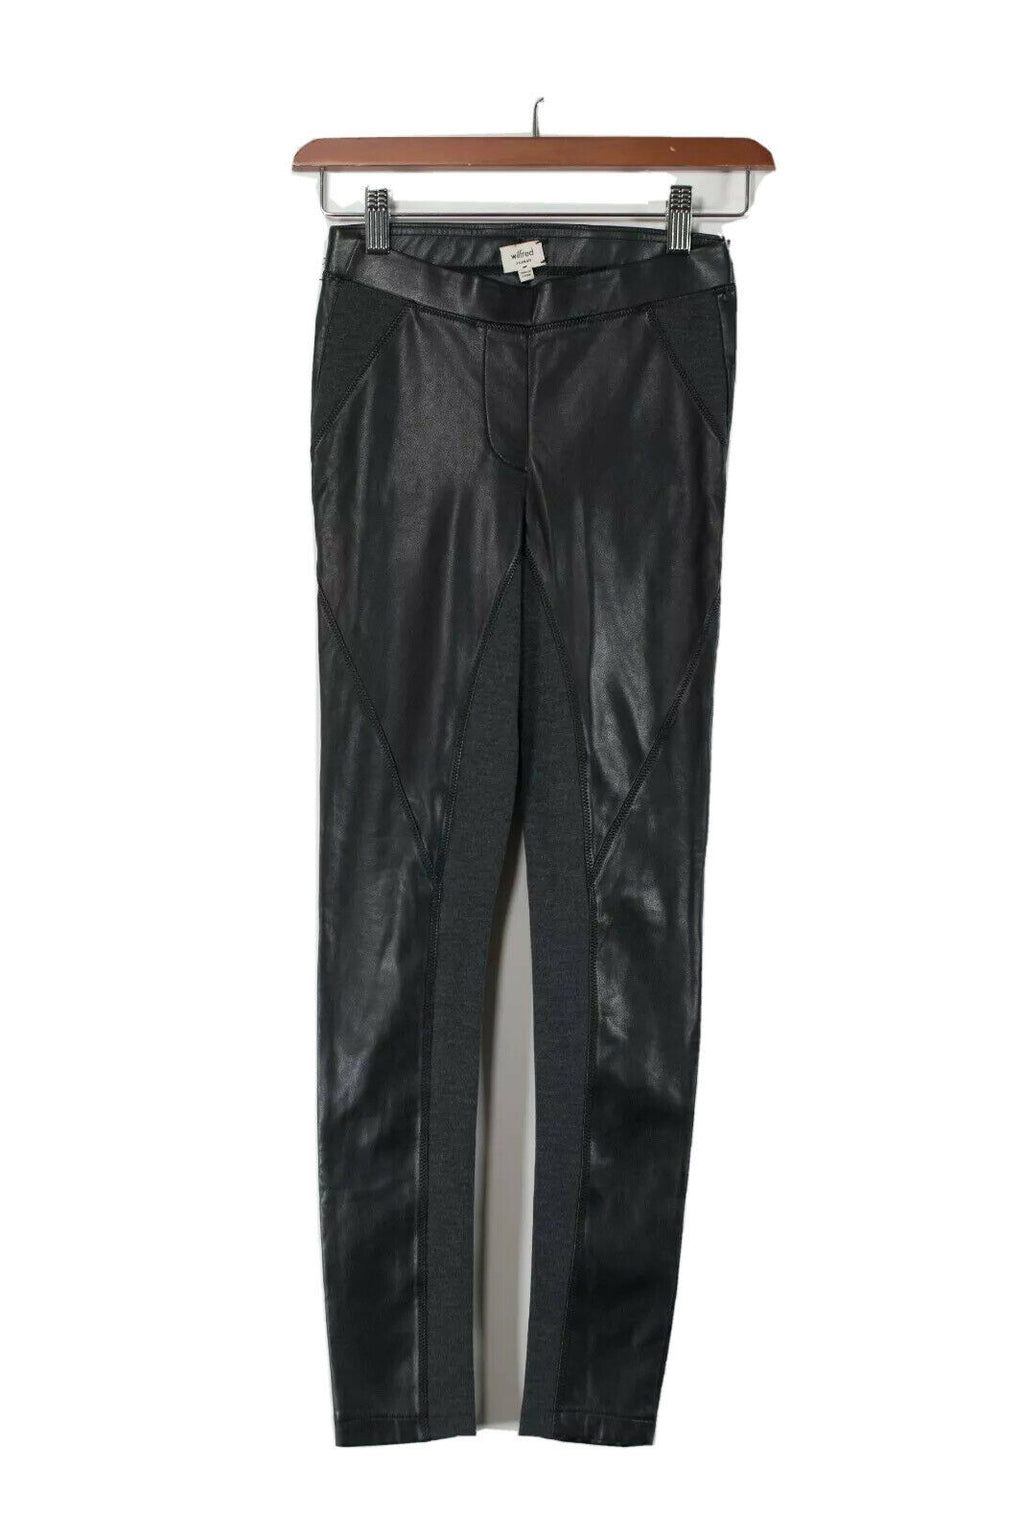 Aritzia Wilfred Womens XXS Black Gray Pants Faux Leather